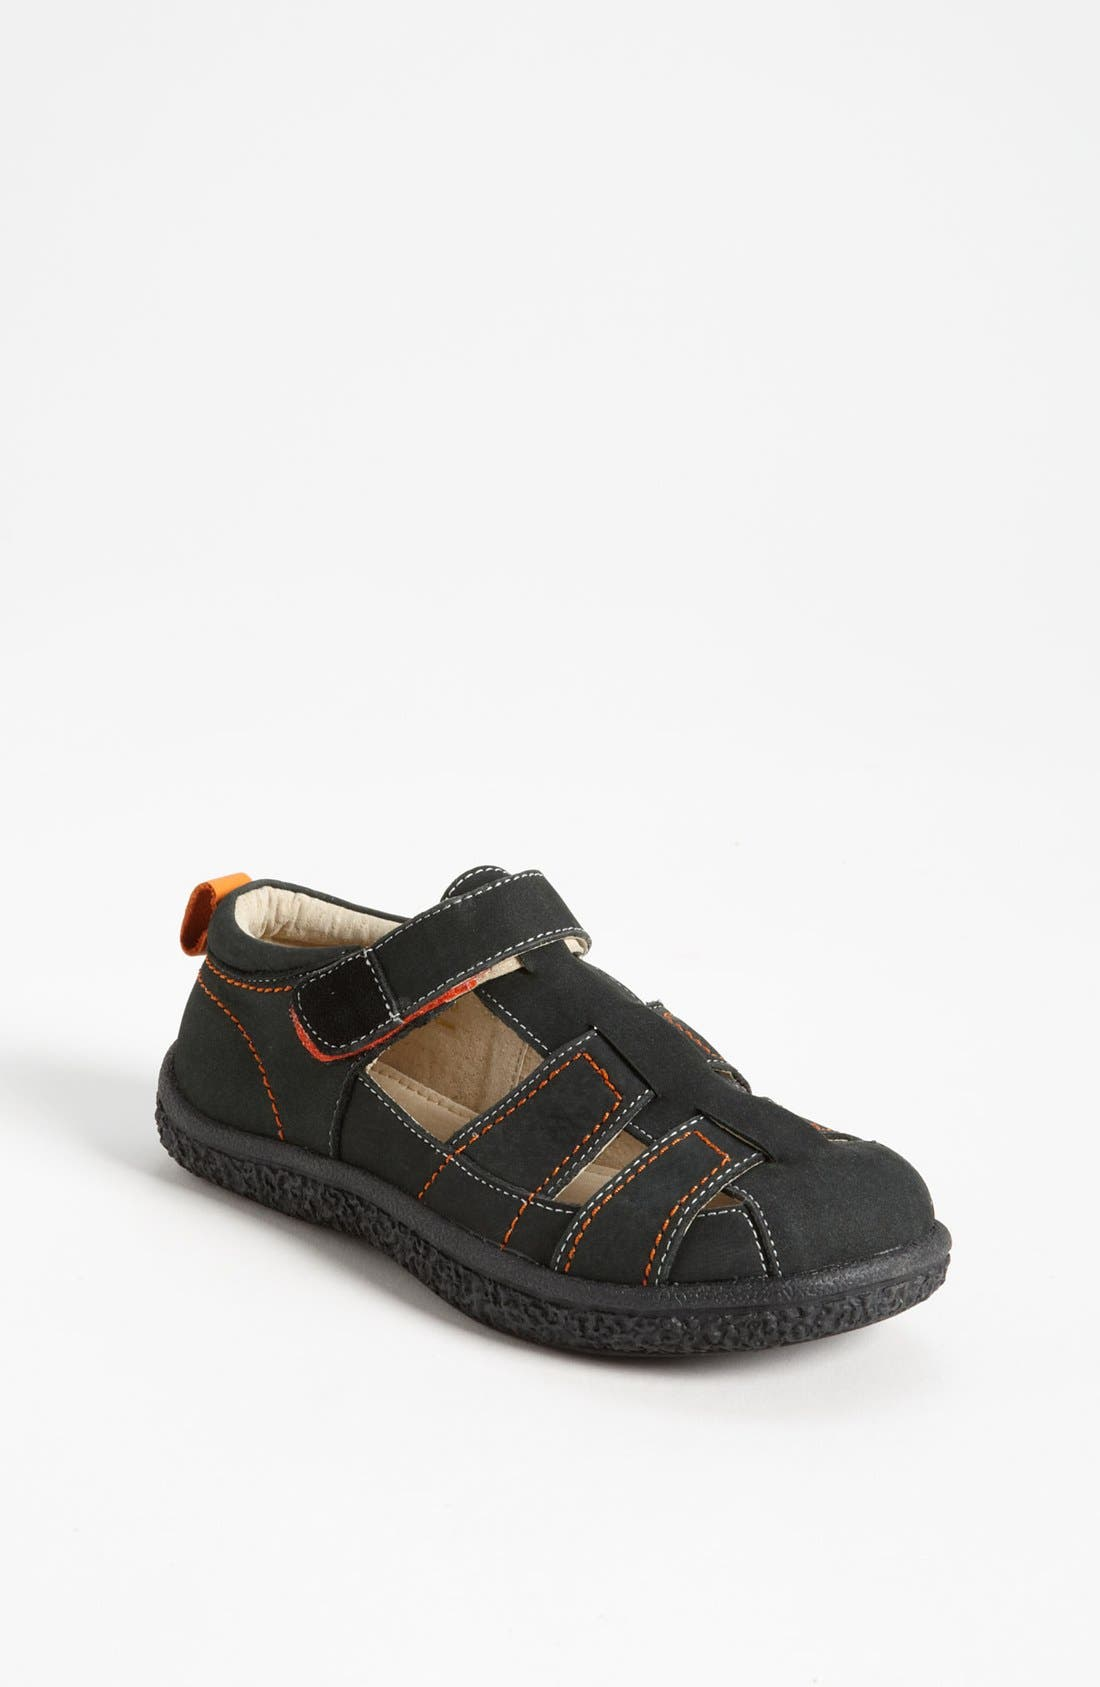 Main Image - See Kai Run 'Christopher' Sandal (Toddler & Little Kid)